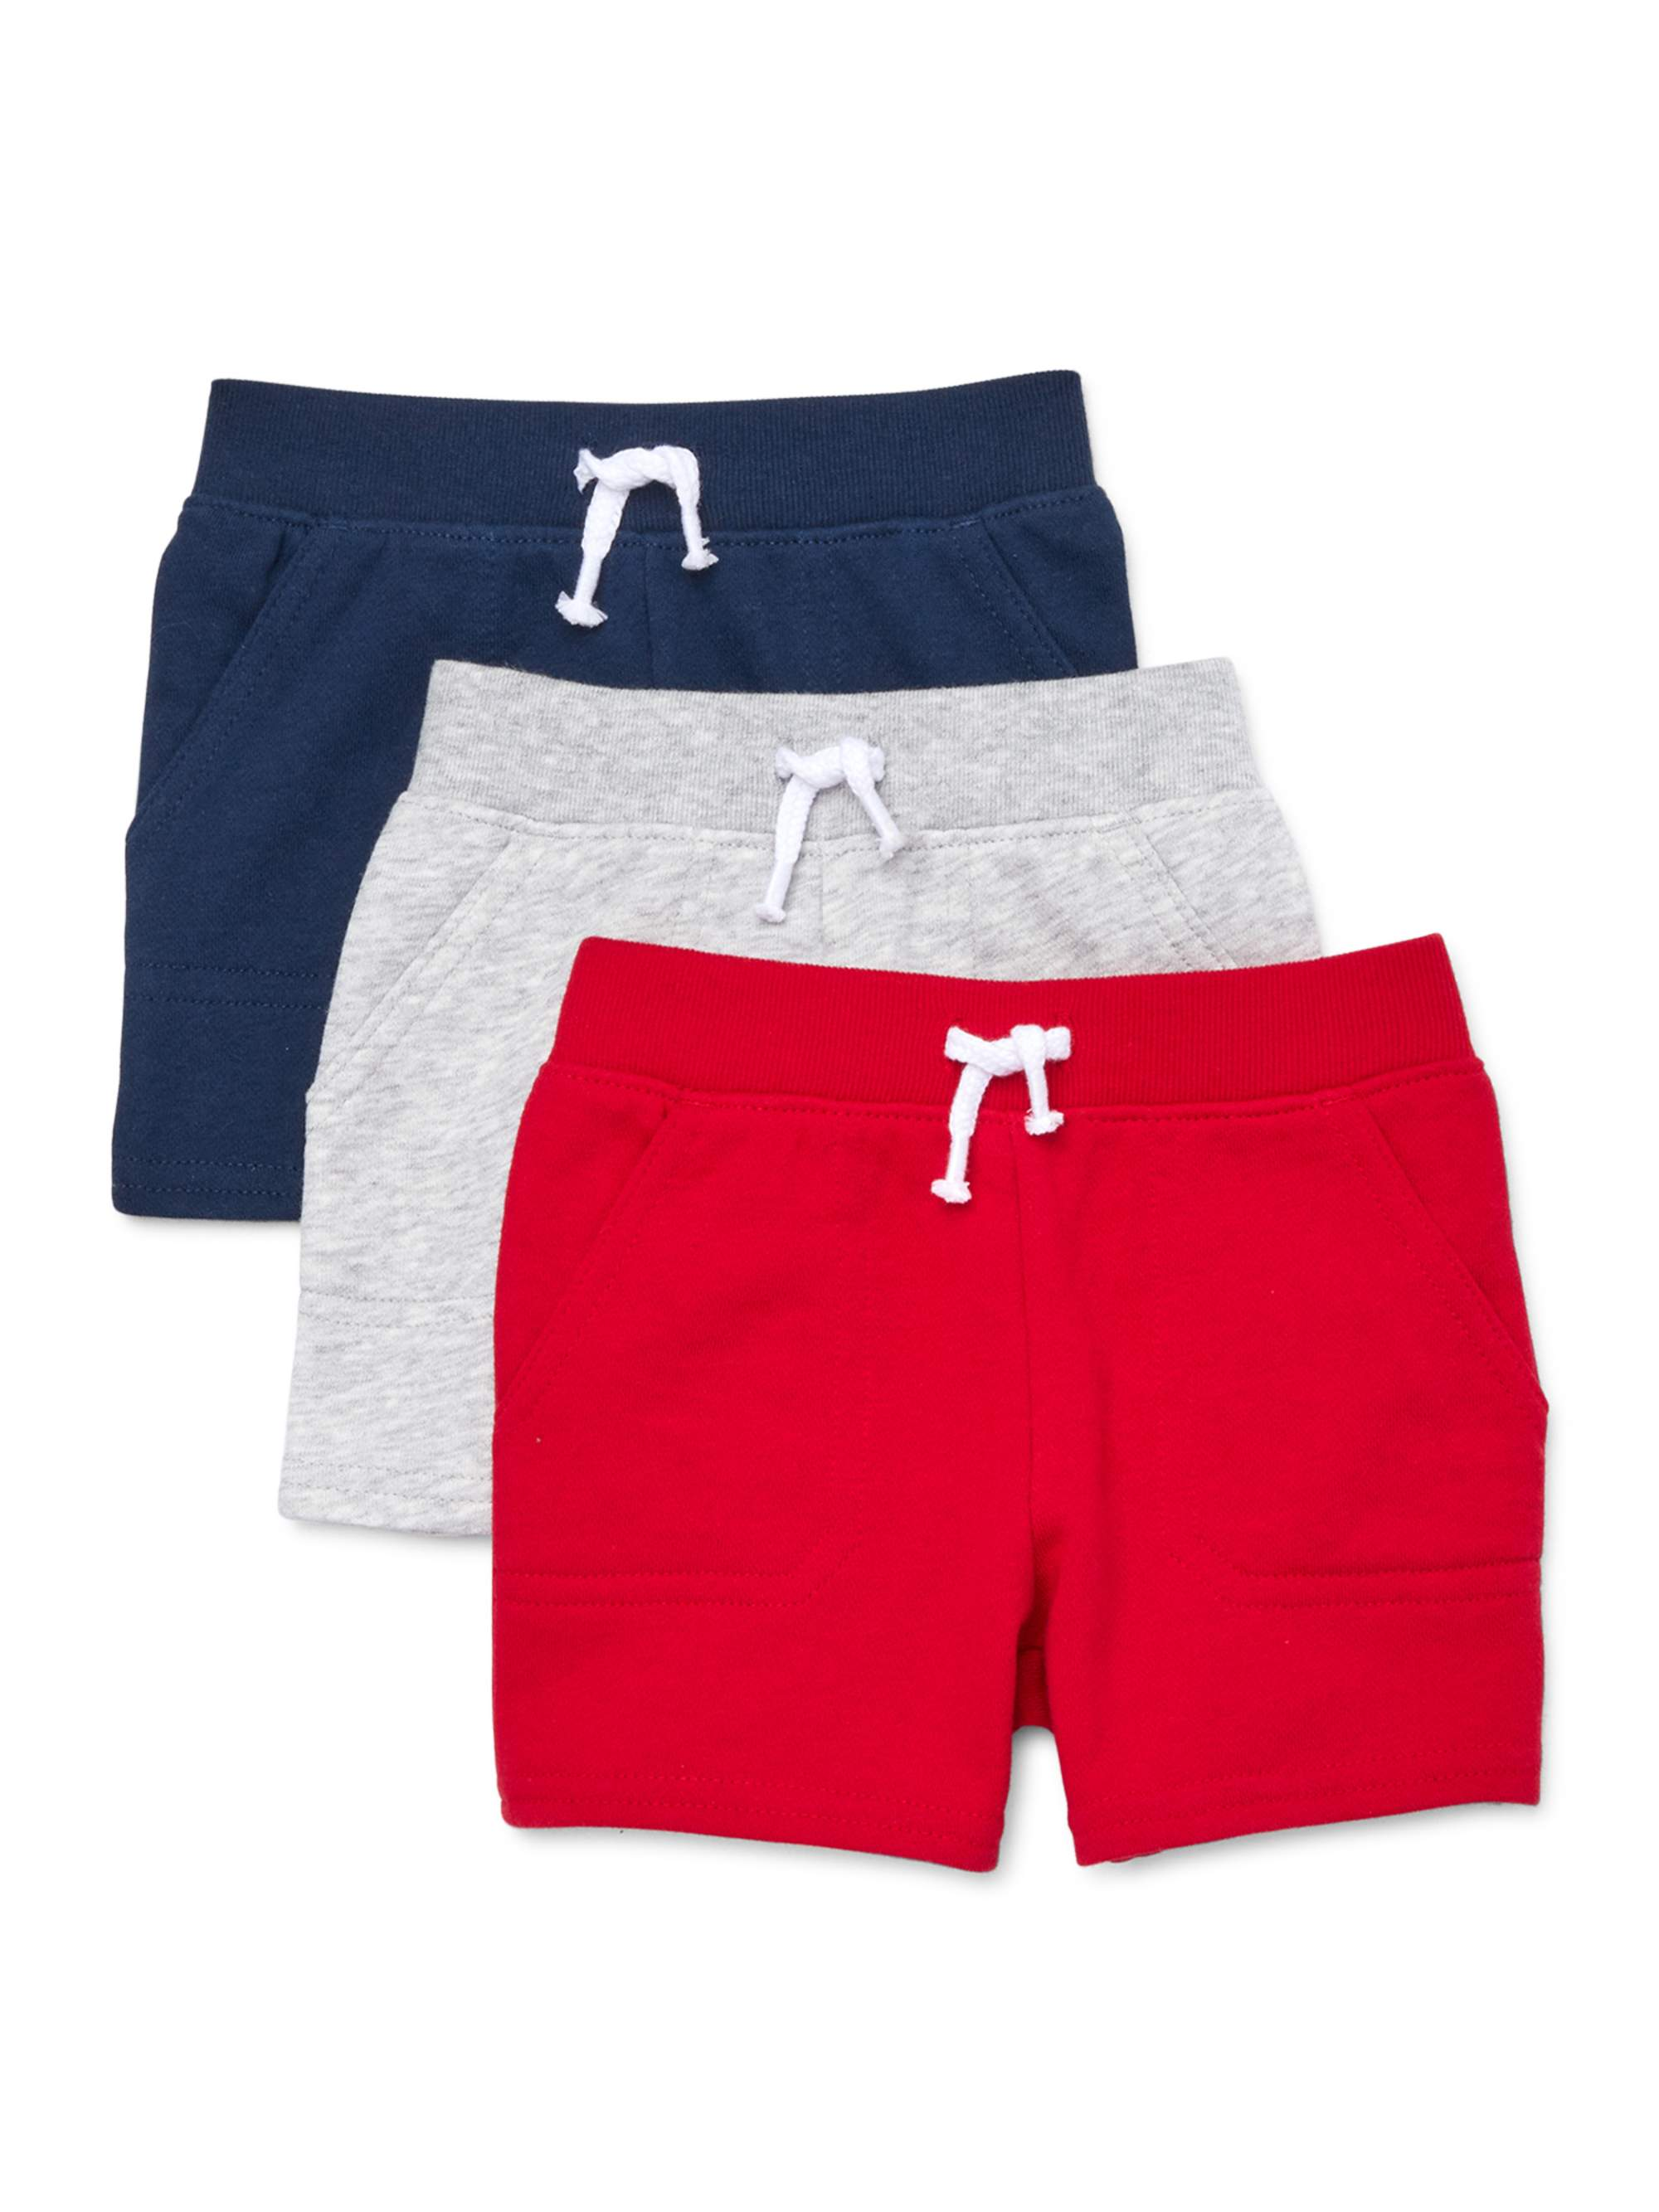 Garanimals Baby Boy Solid French Terry Shorts Multi-Pack, 3pc